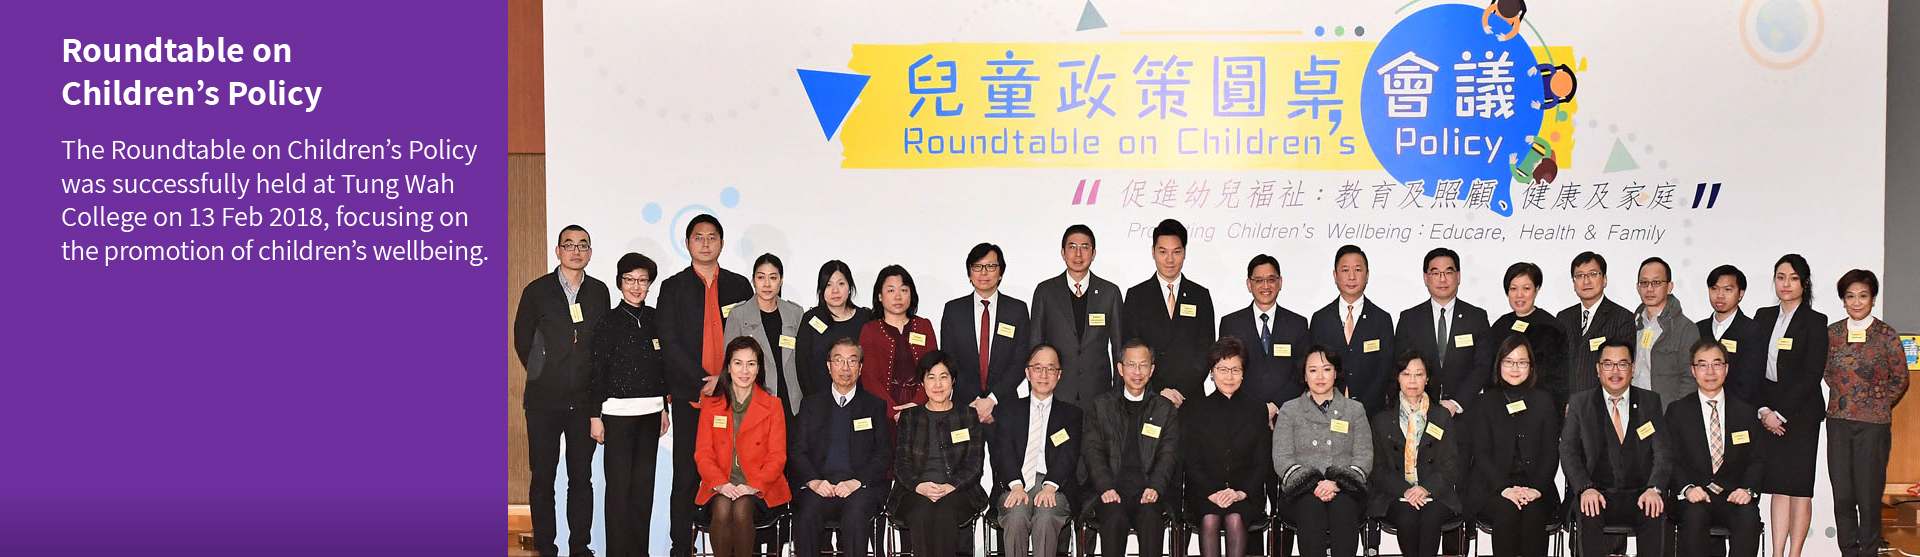 The Roundtable on Children's Policy was successfully held at Tung Wah College on 13 Feb 2018, focusing on the promotion of children's wellbeing.